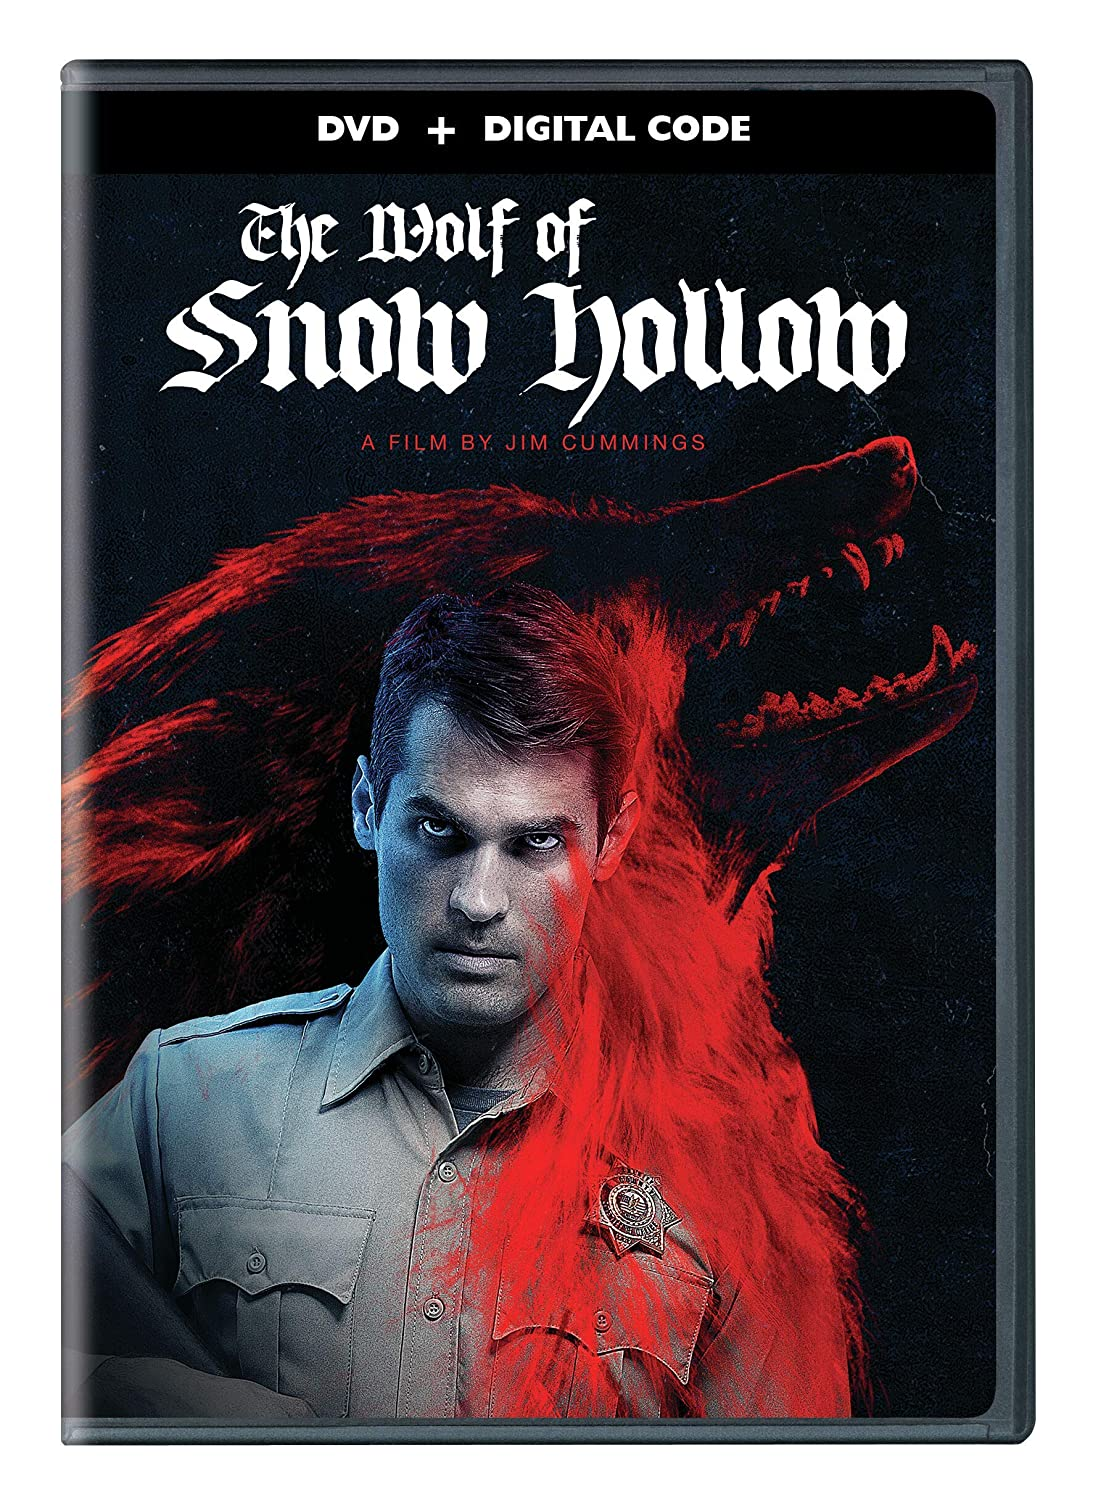 The-Wolf-of-Snow-Hollow-(DVD)